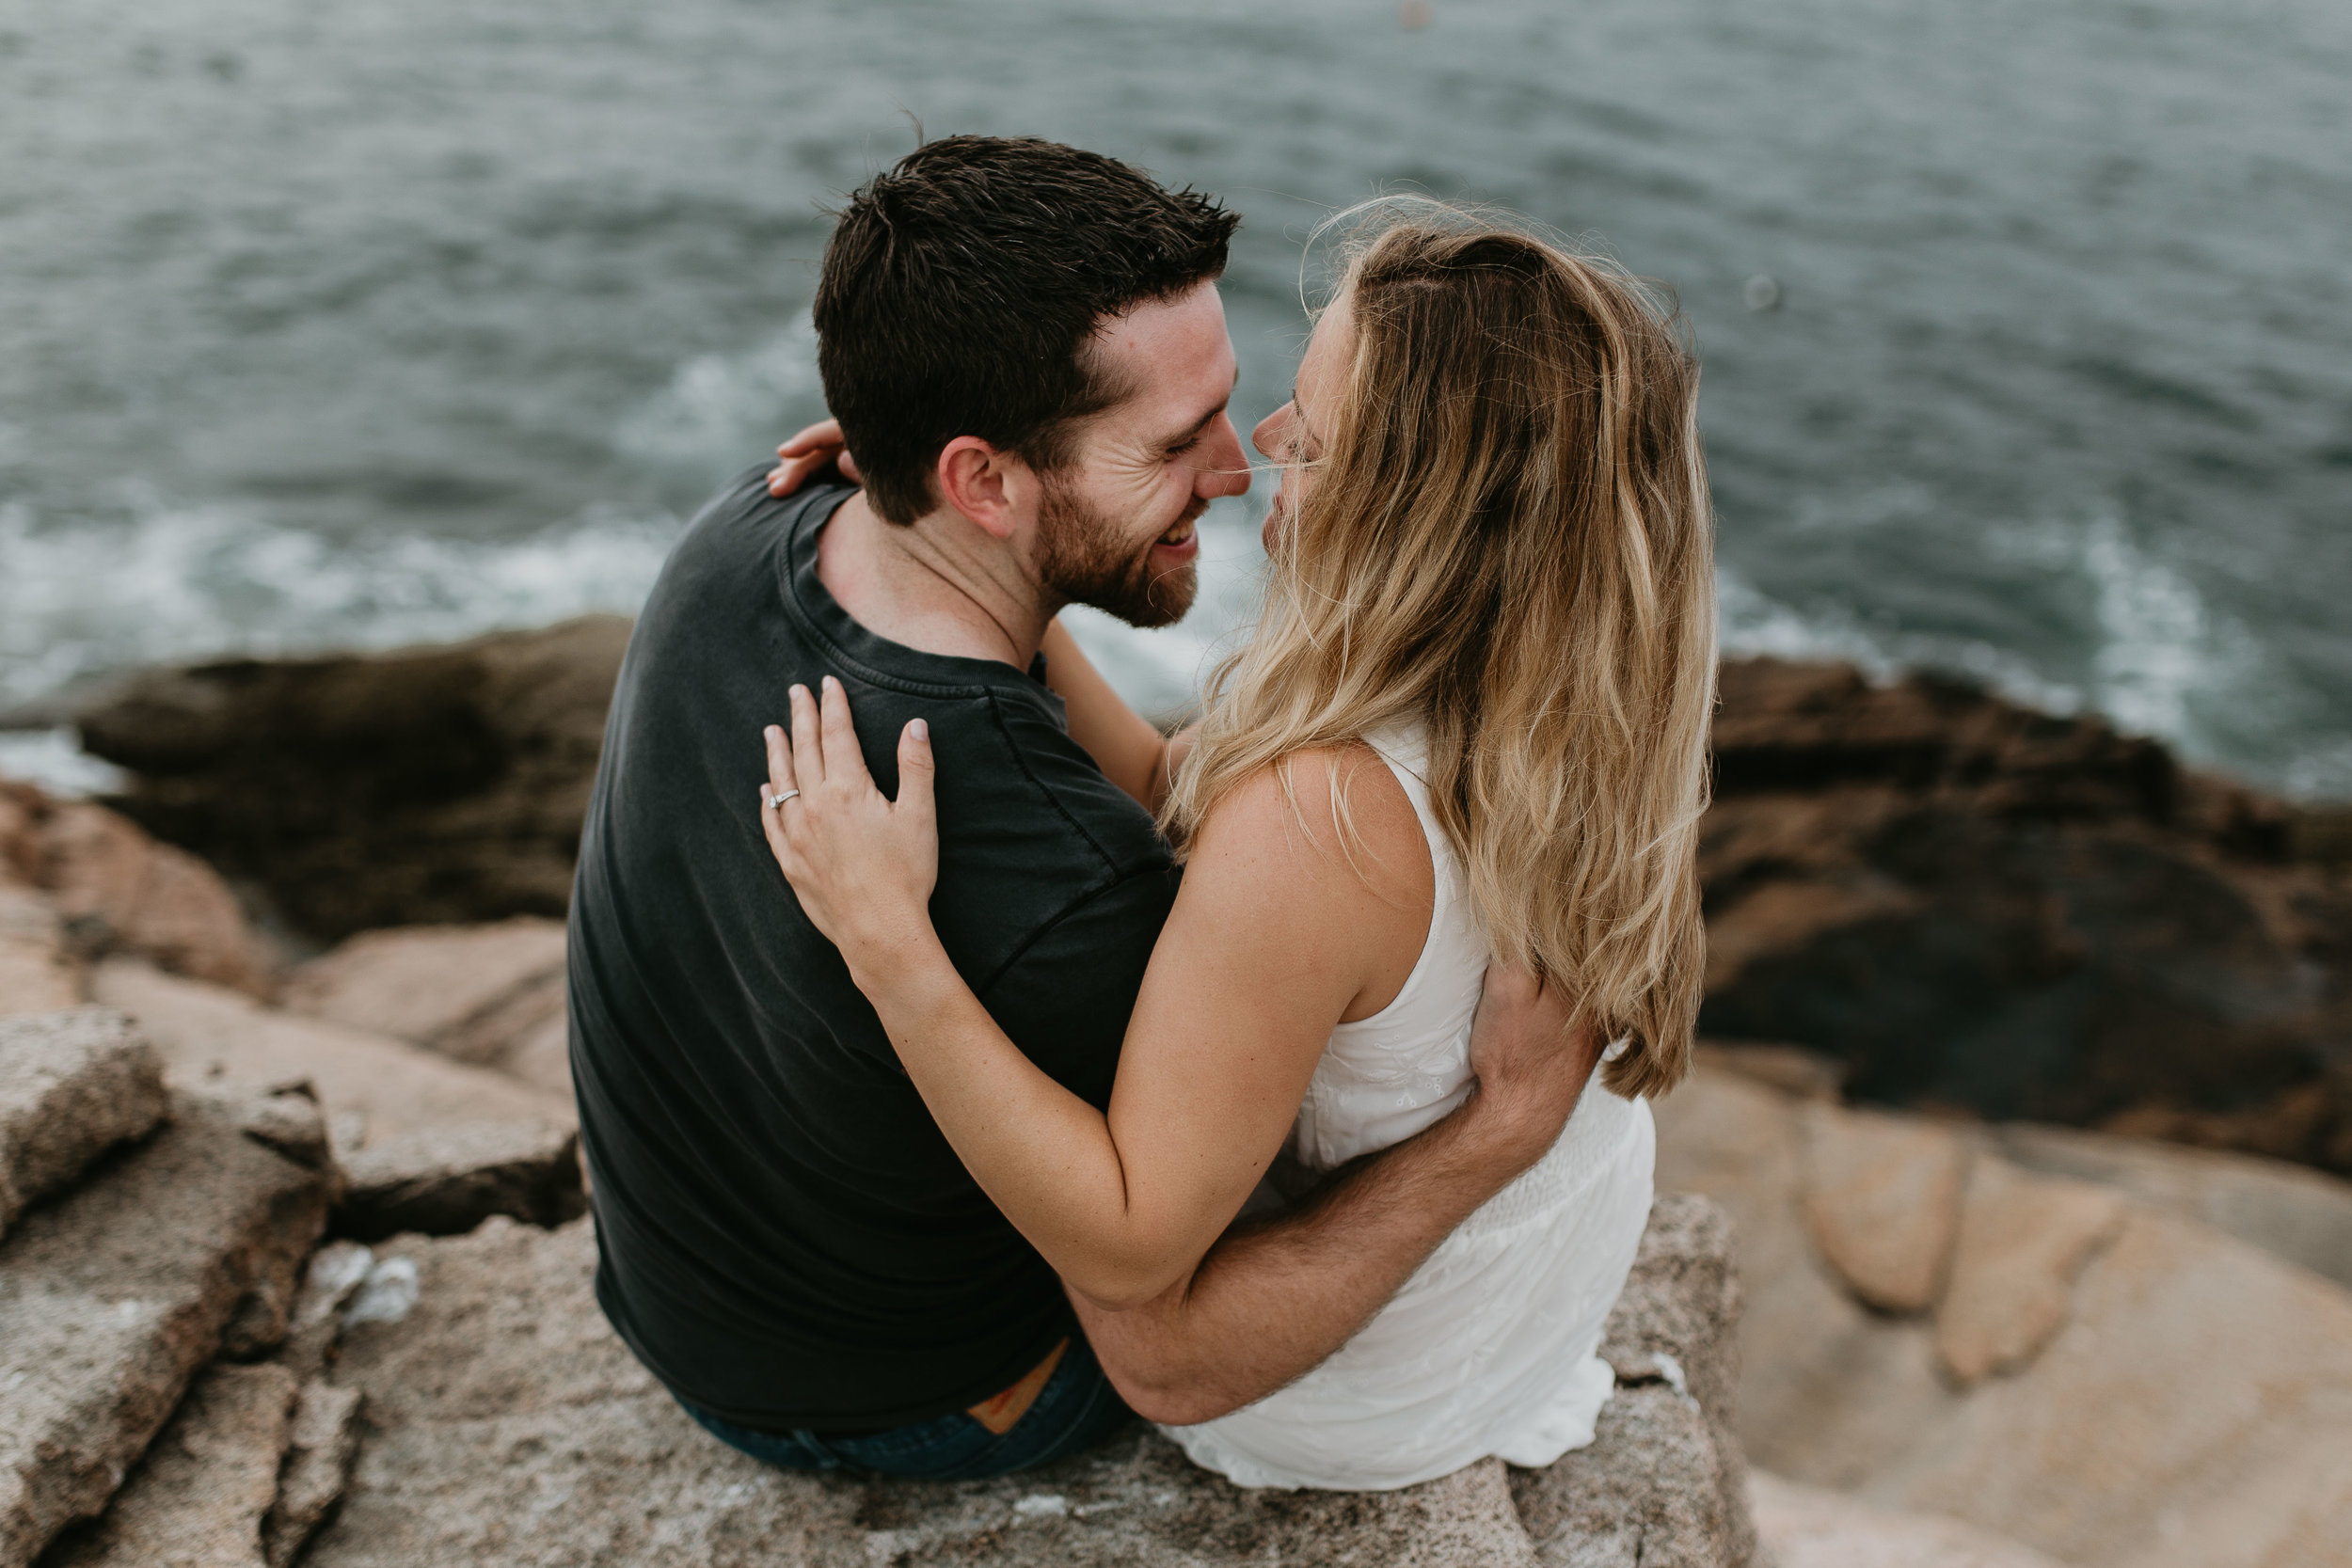 nicole-daacke-photography-acadia-national-park-adventurous-engagement-session-photos-otter-cliffs-forests-coastline-sand-beach-adventure-session-bar-harbor-mt-desert-island-elopement-fall-bass-harbor-lighthouse-wedding-maine-landscape-photographer-36.jpg